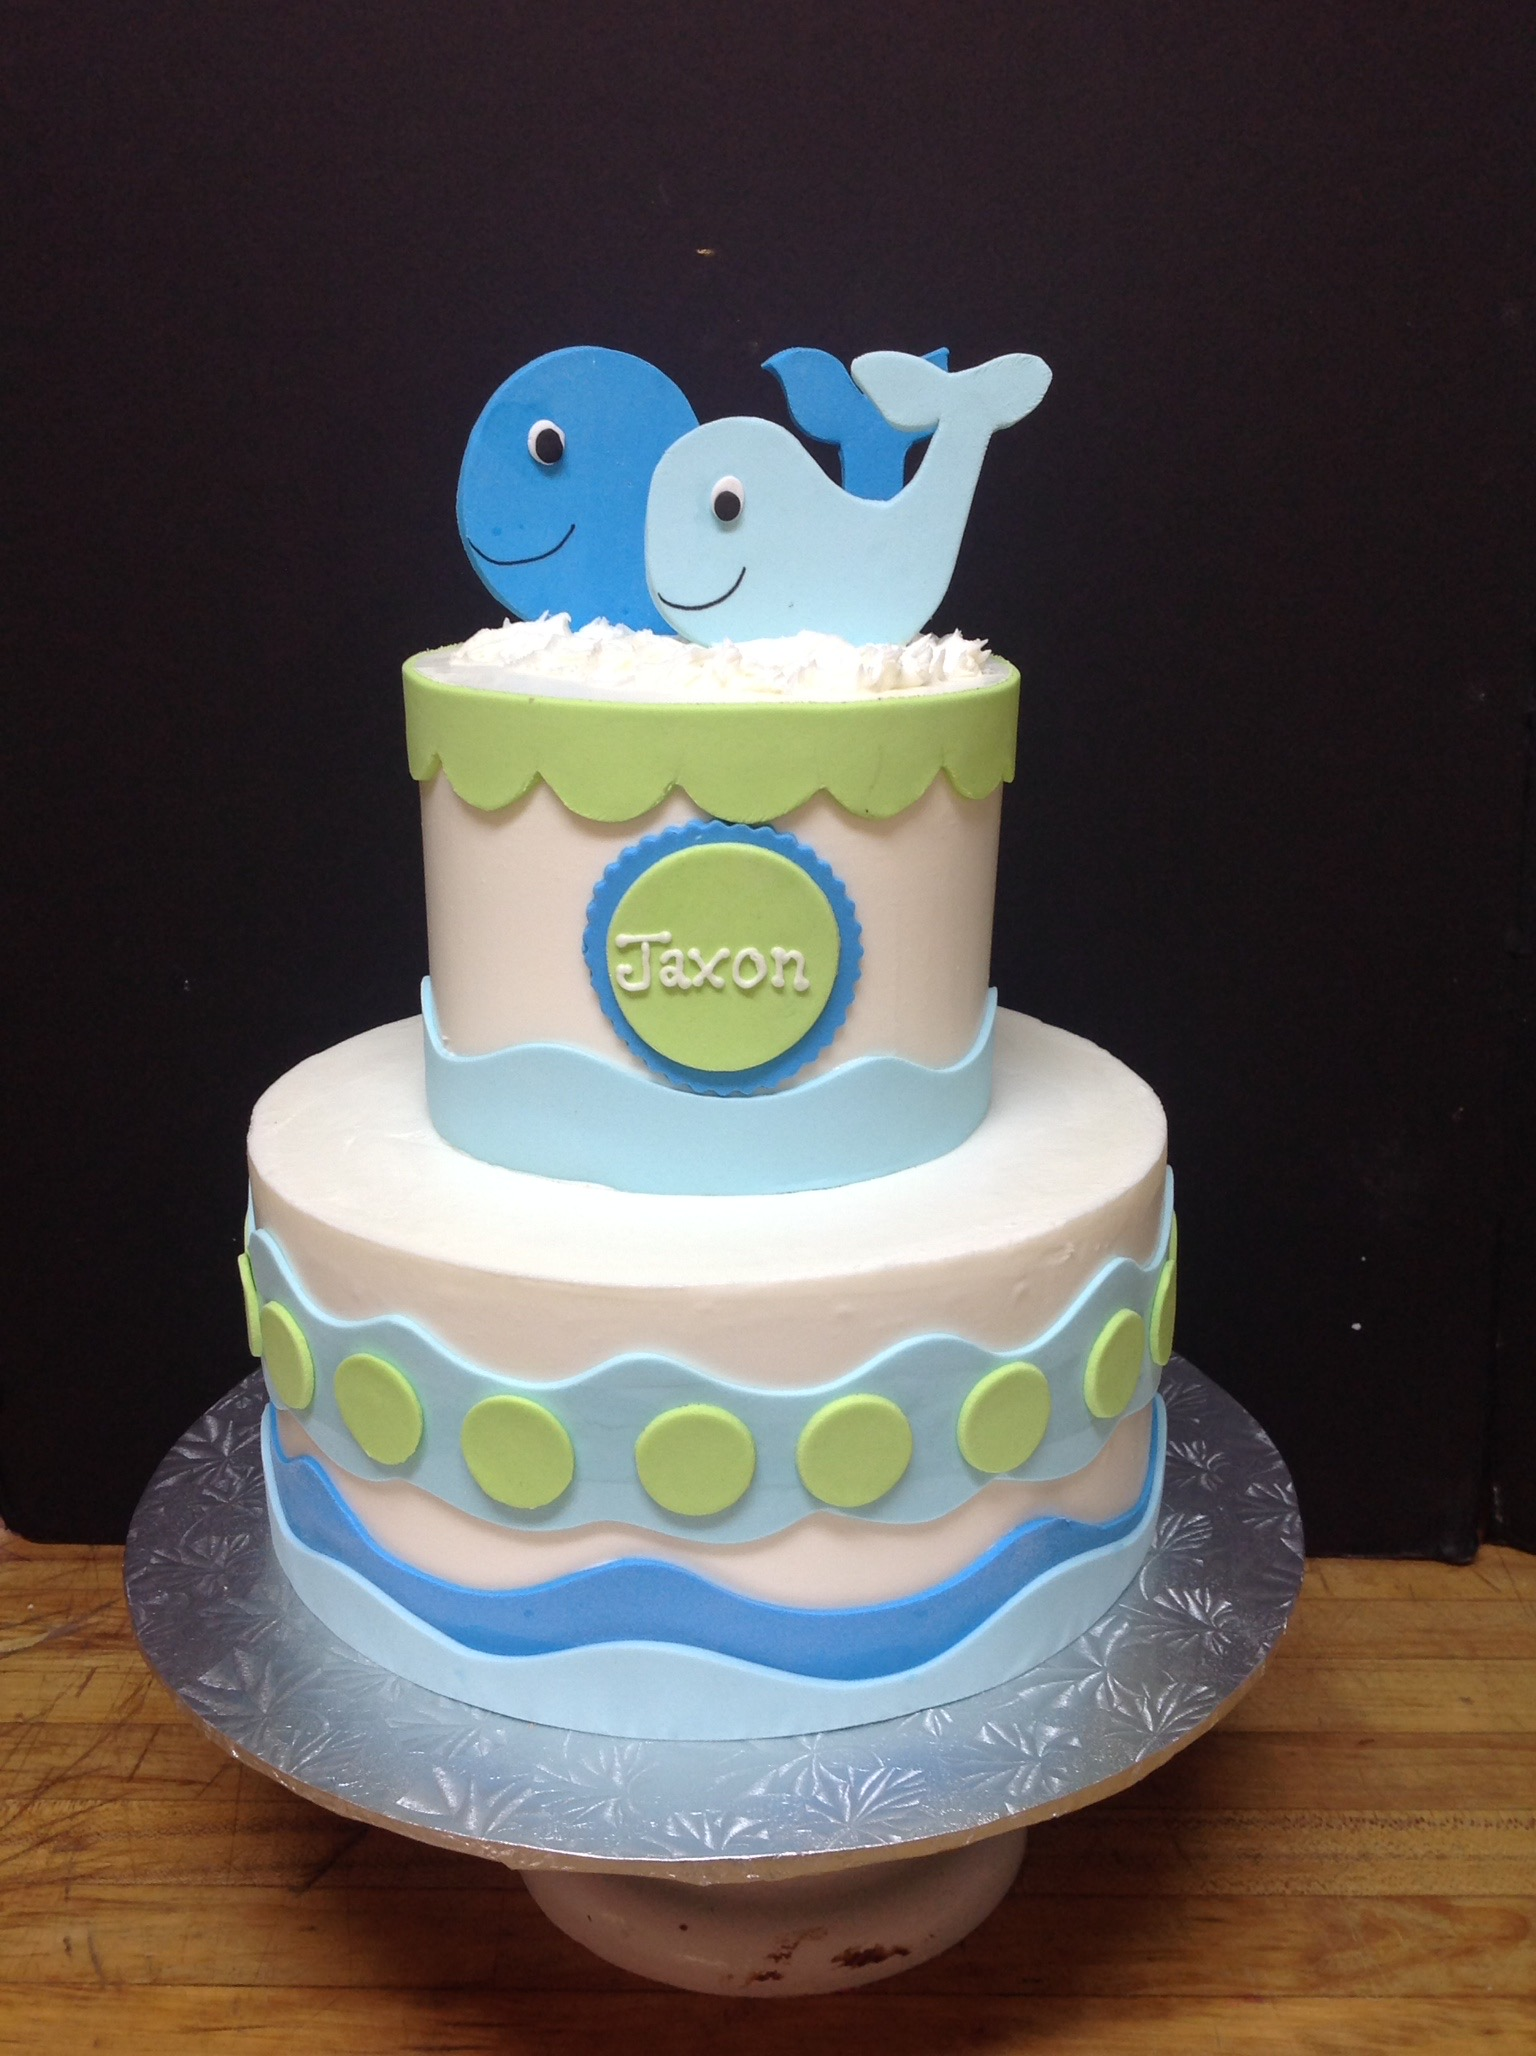 Baby Shower Cakes – The Cocoa Bean Bakery